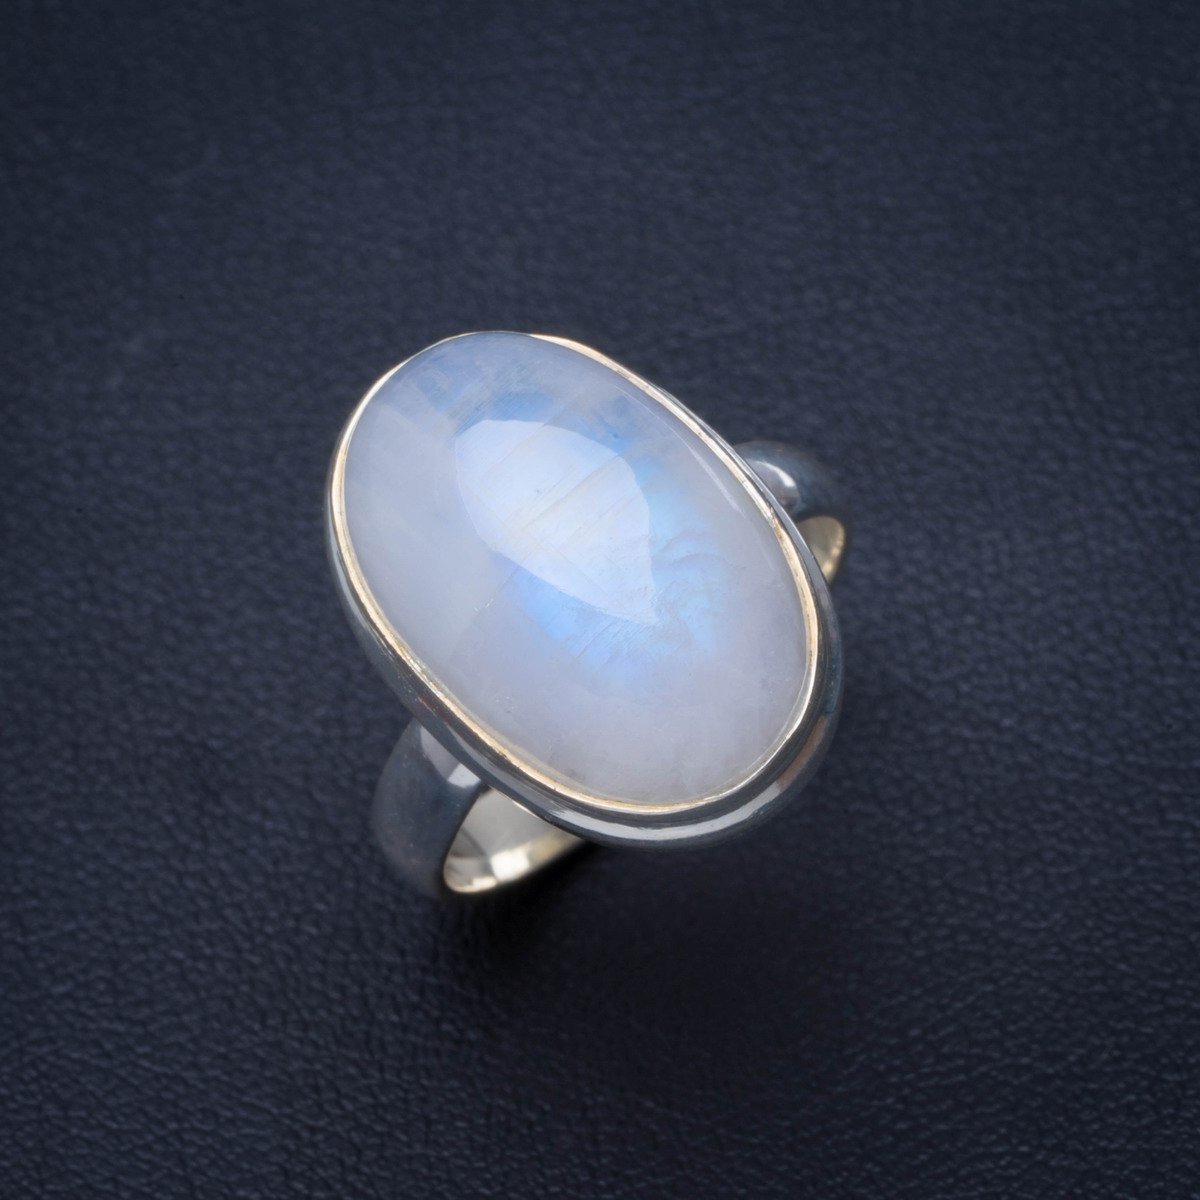 Natural Rainbow Moonstone Handmade Unique 925 Sterling Silver Ring 8 B1390Natural Rainbow Moonstone Handmade Unique 925 Sterling Silver Ring 8 B1390